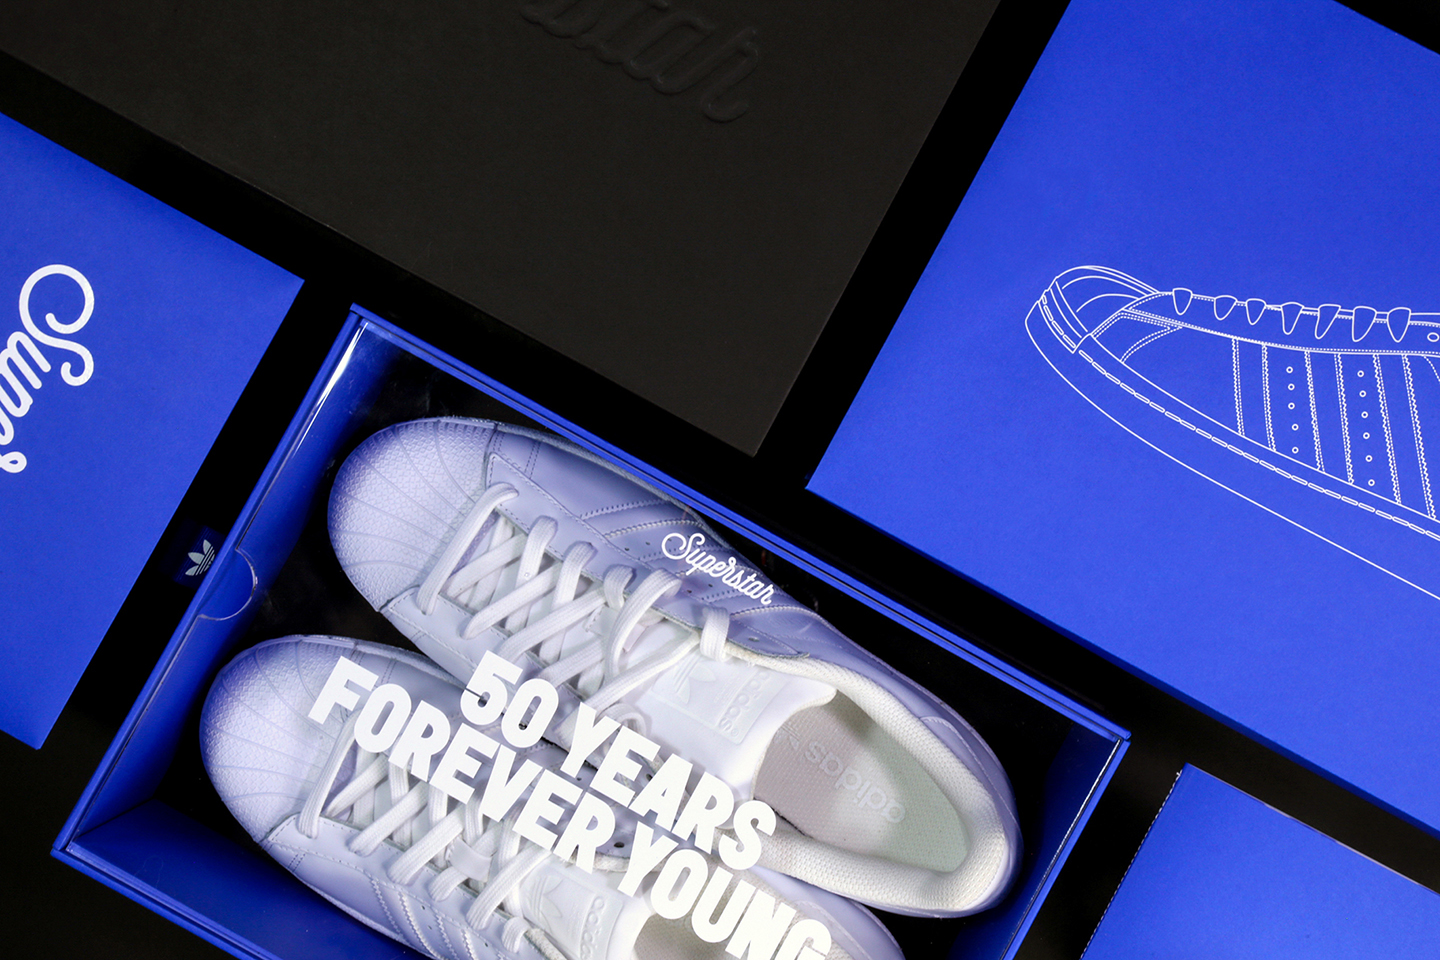 Packaging & Branding: Adidas Superstar 50th Anniversary